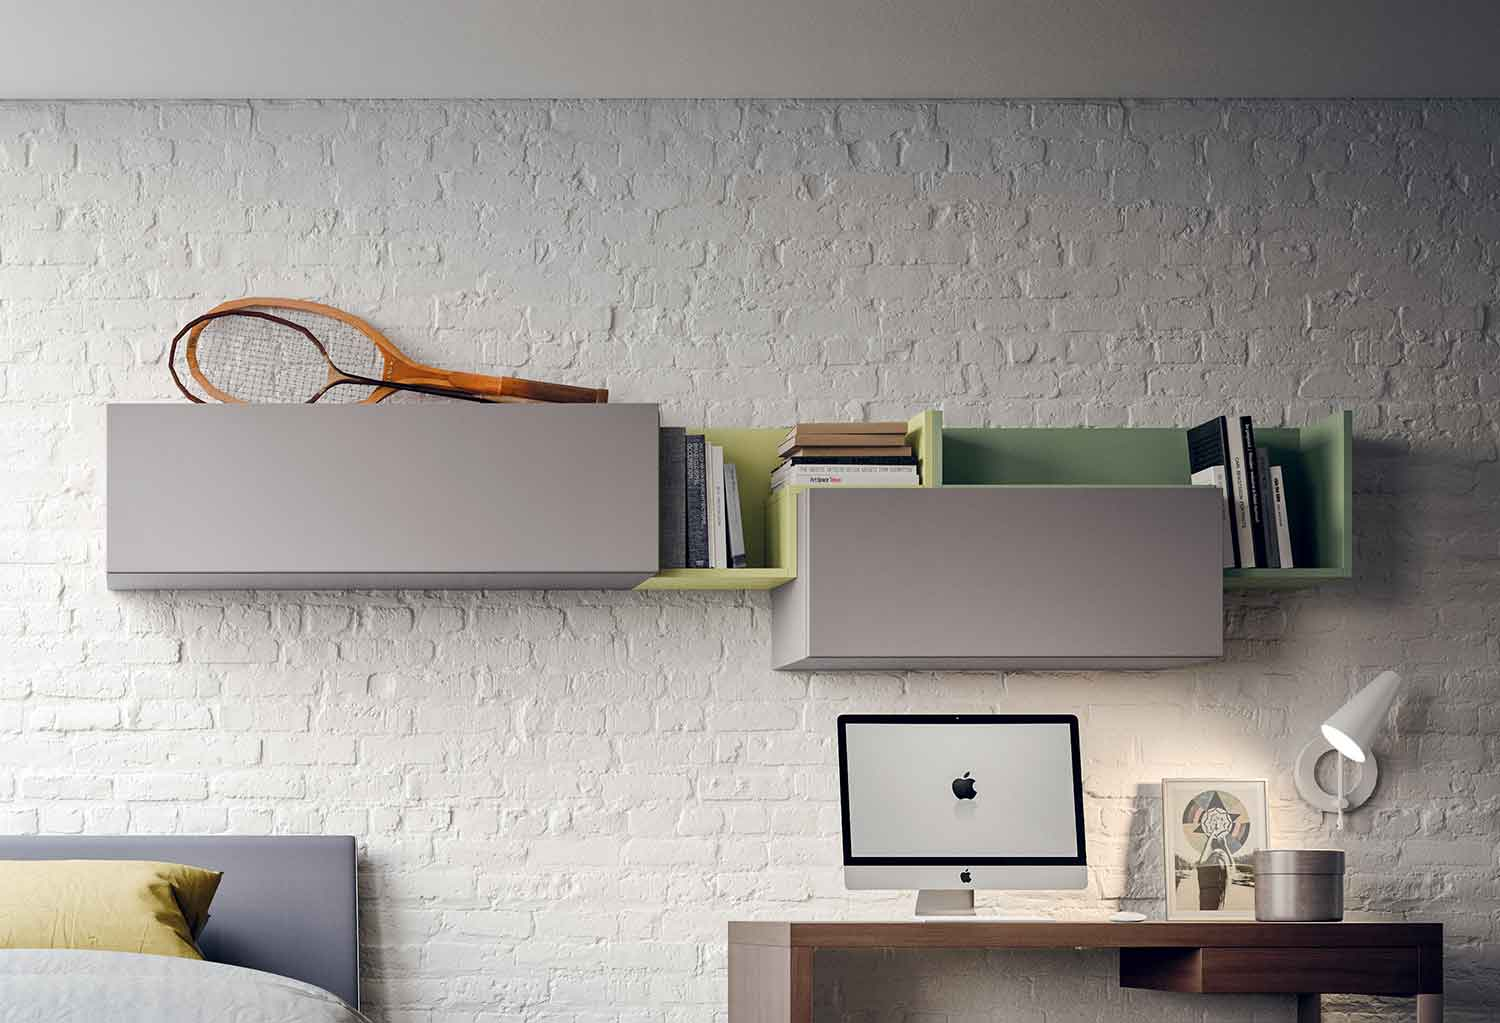 Two Fedra l-shaped shelves combined with Box storage units